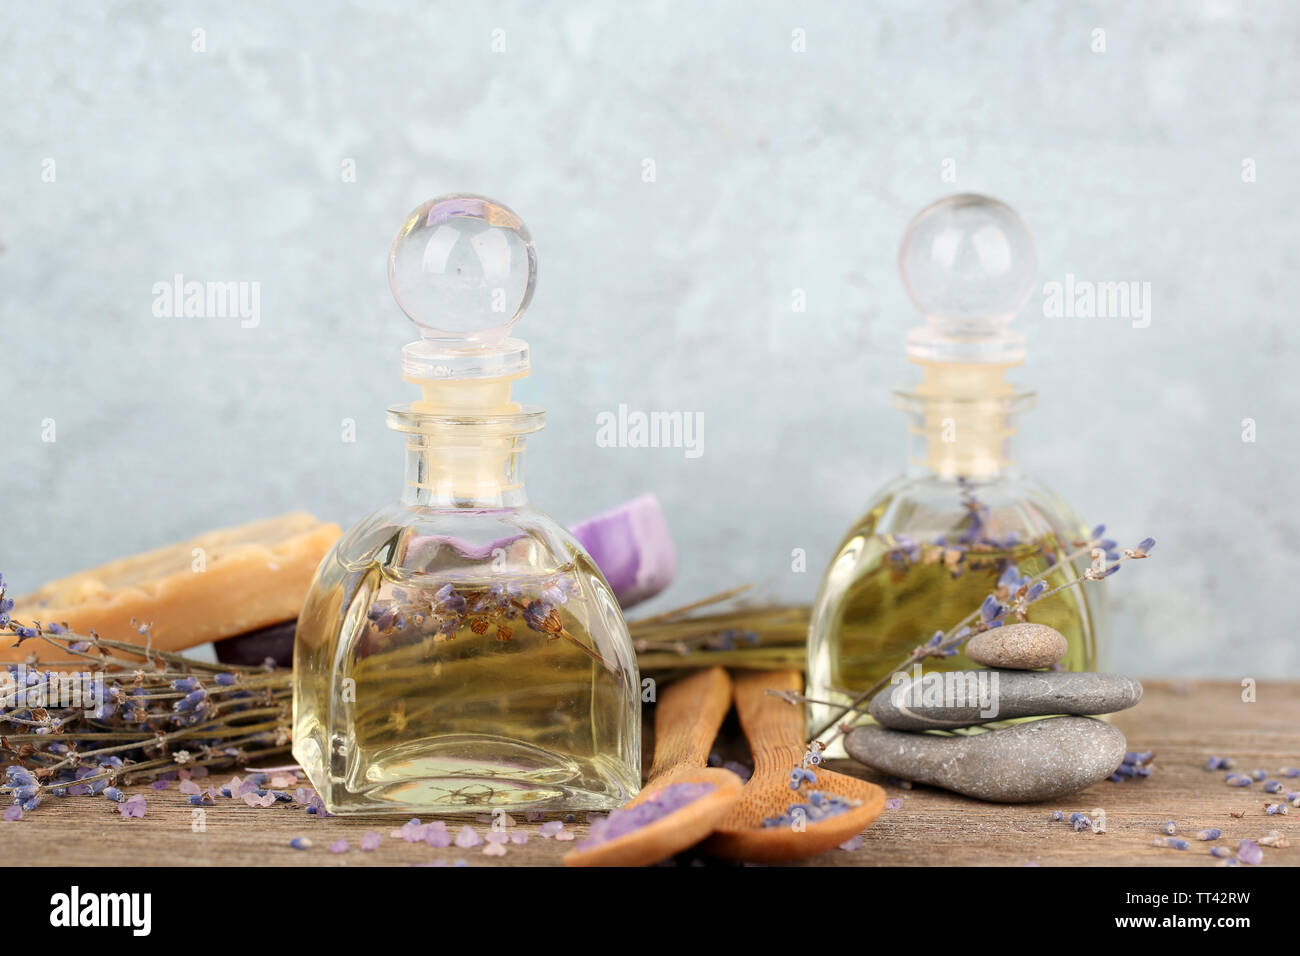 Spa still life with lavender oil and flowers on wooden table, on grey background - Stock Image